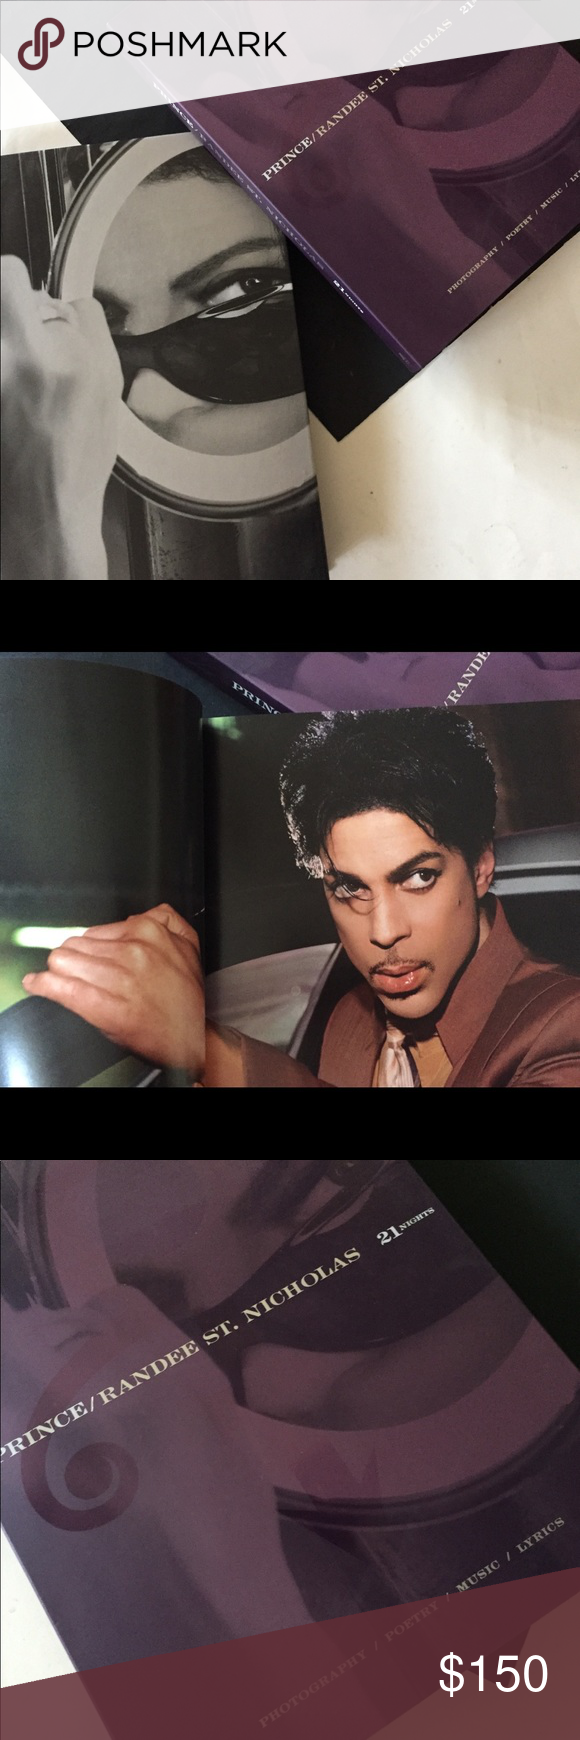 PRINCE 21 nights Rare photograph book with pictures by